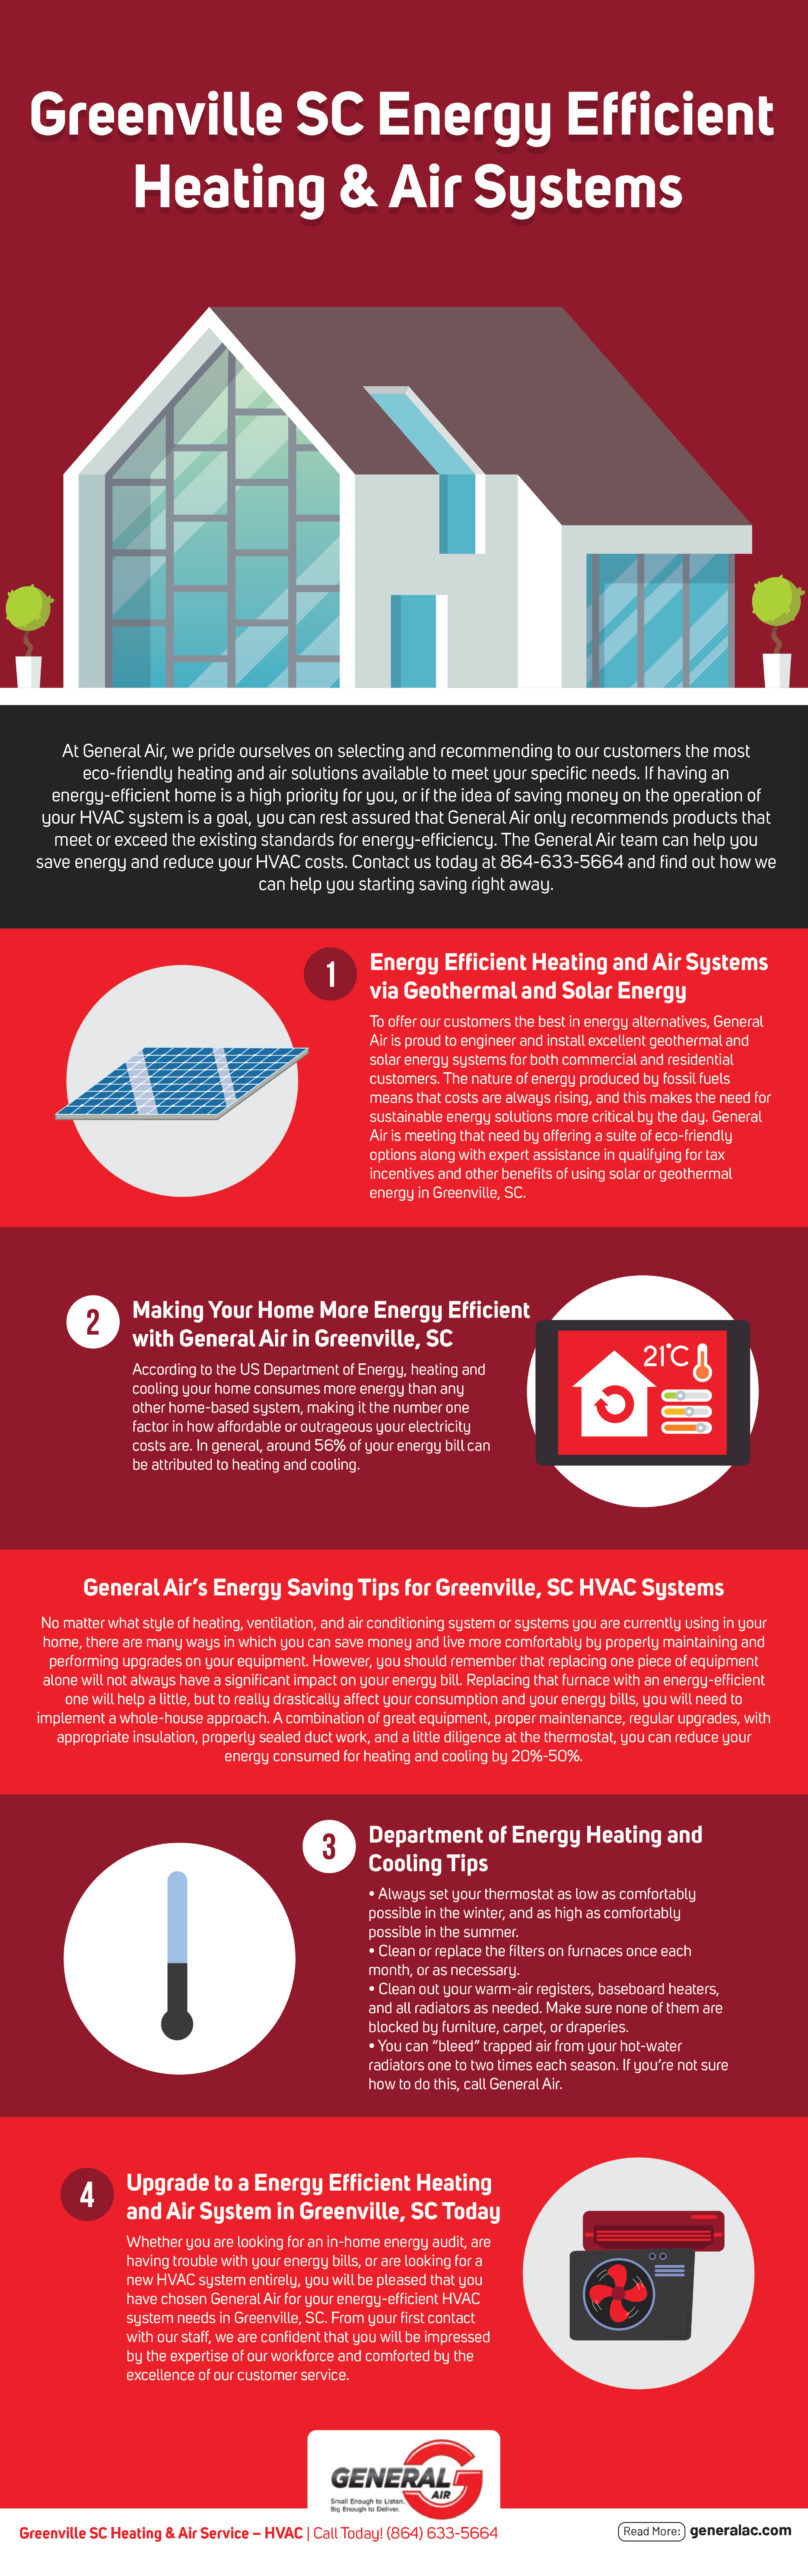 Greenville Energy Efficient Heating And Air Systems Infographic